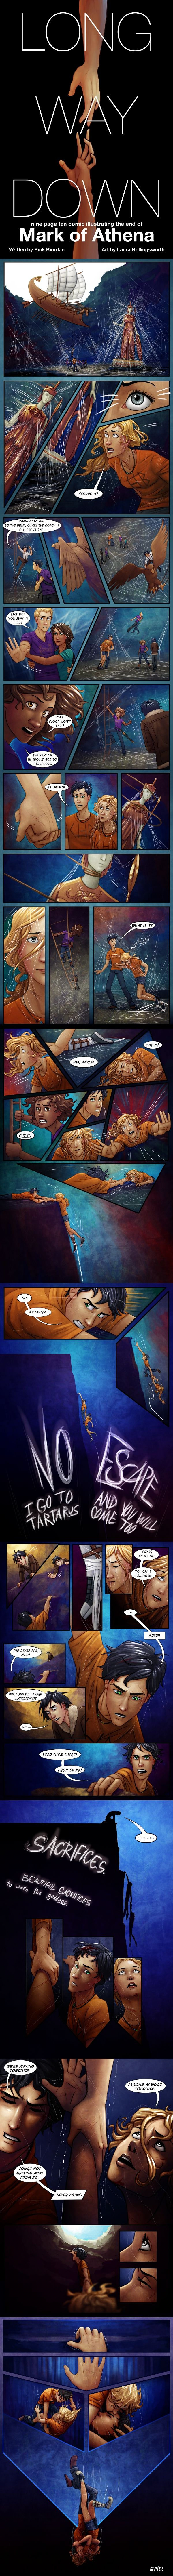 Long Way Down - Complete Comic - Mark of Athena by lostie815.deviantart.com MY HEART!! The feels have taken over!! :(